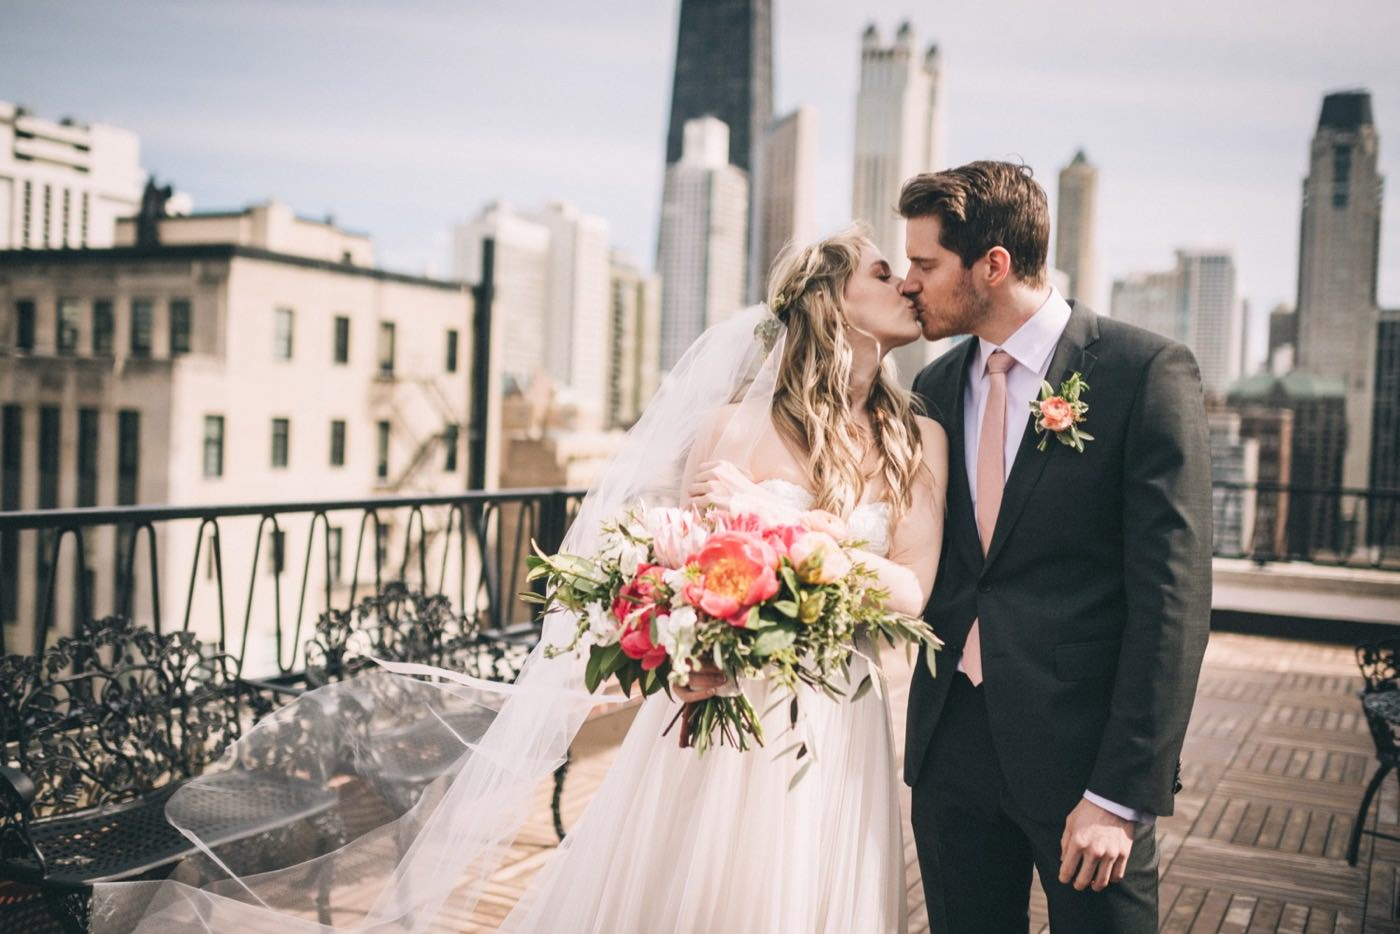 18_Lucy-Daniel-Chicago-Wedding-By-Sarah-Katherine-Davis-Photography0217edit.jpg